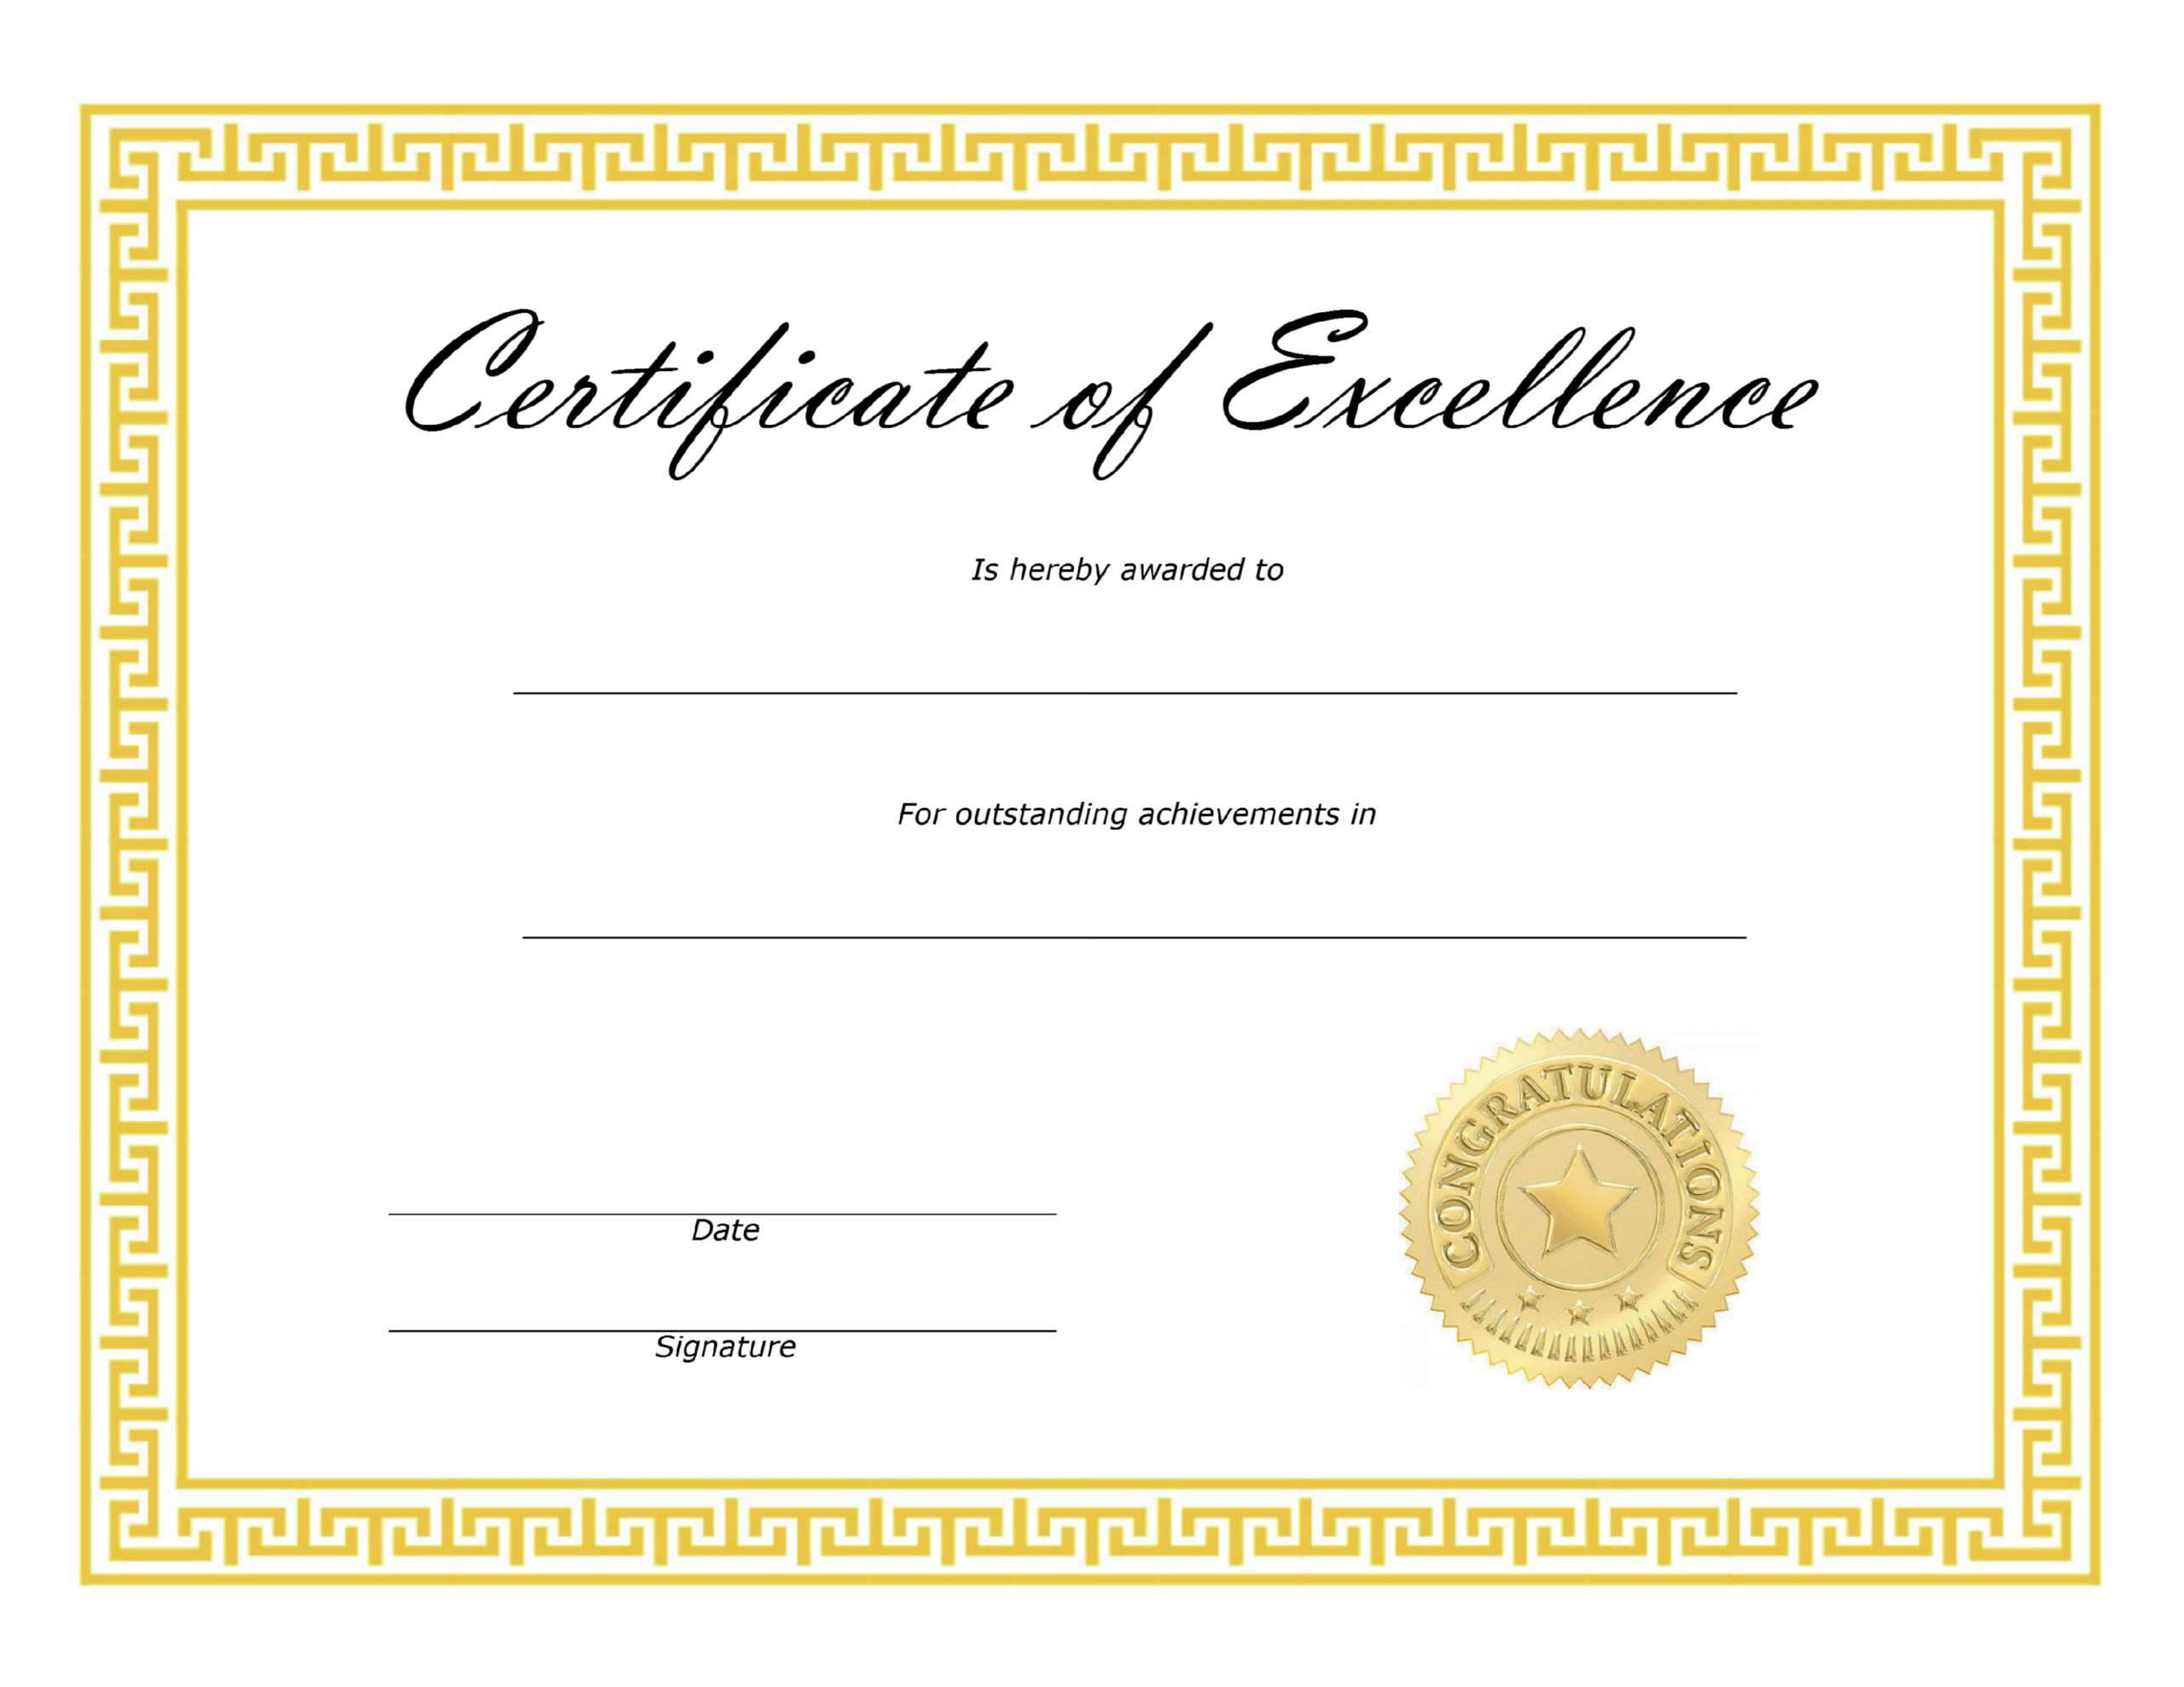 ❤️ Free Sample Certificate Of Excellence Templates❤️ Intended For Award Of Excellence Certificate Template